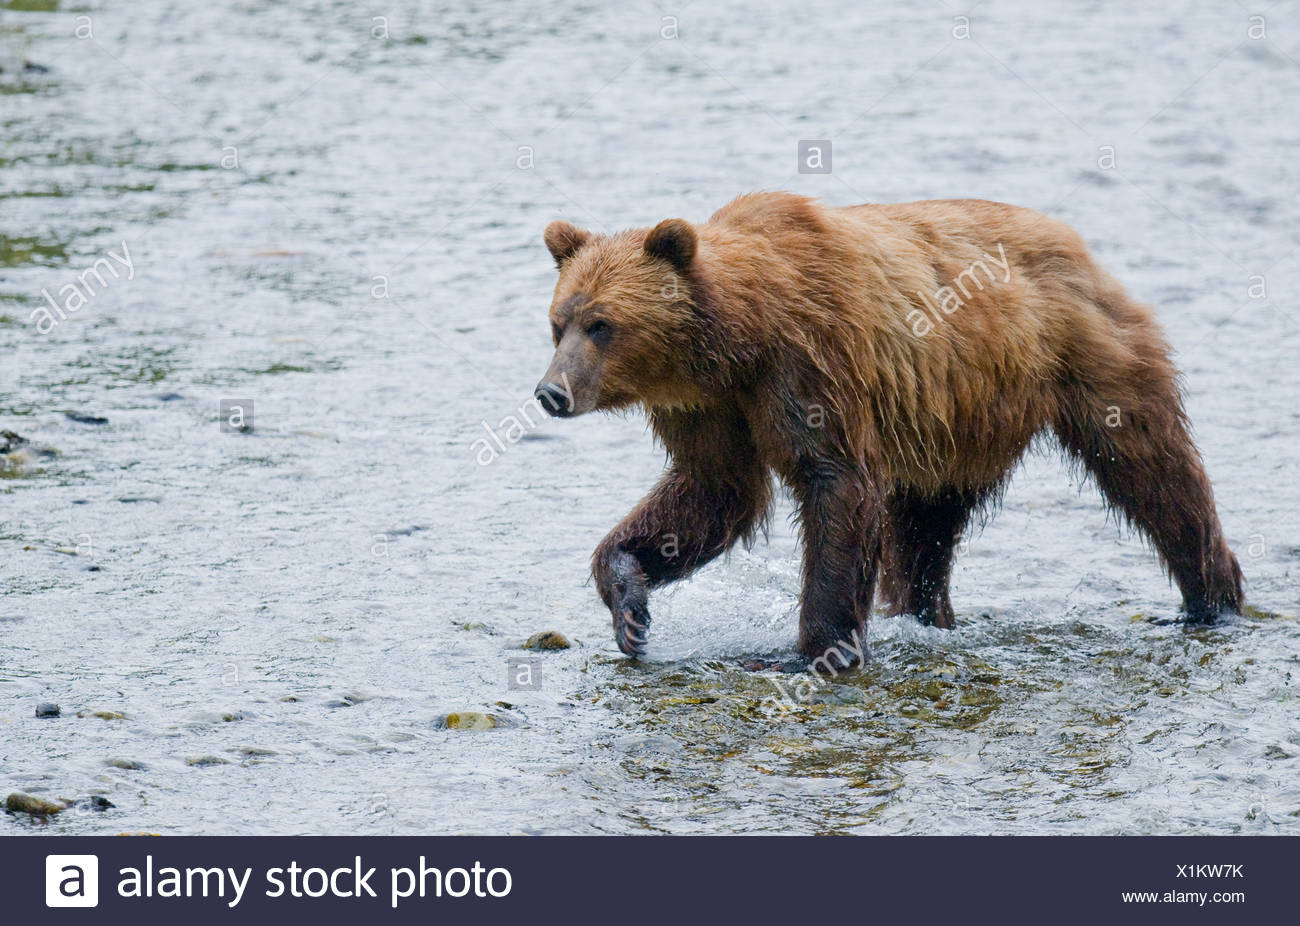 Grizzly Bear (Ursus arctos horribilis) Adult watching for salmon in spawning stream. In costal areas grizzliy frequents streams - Stock Image